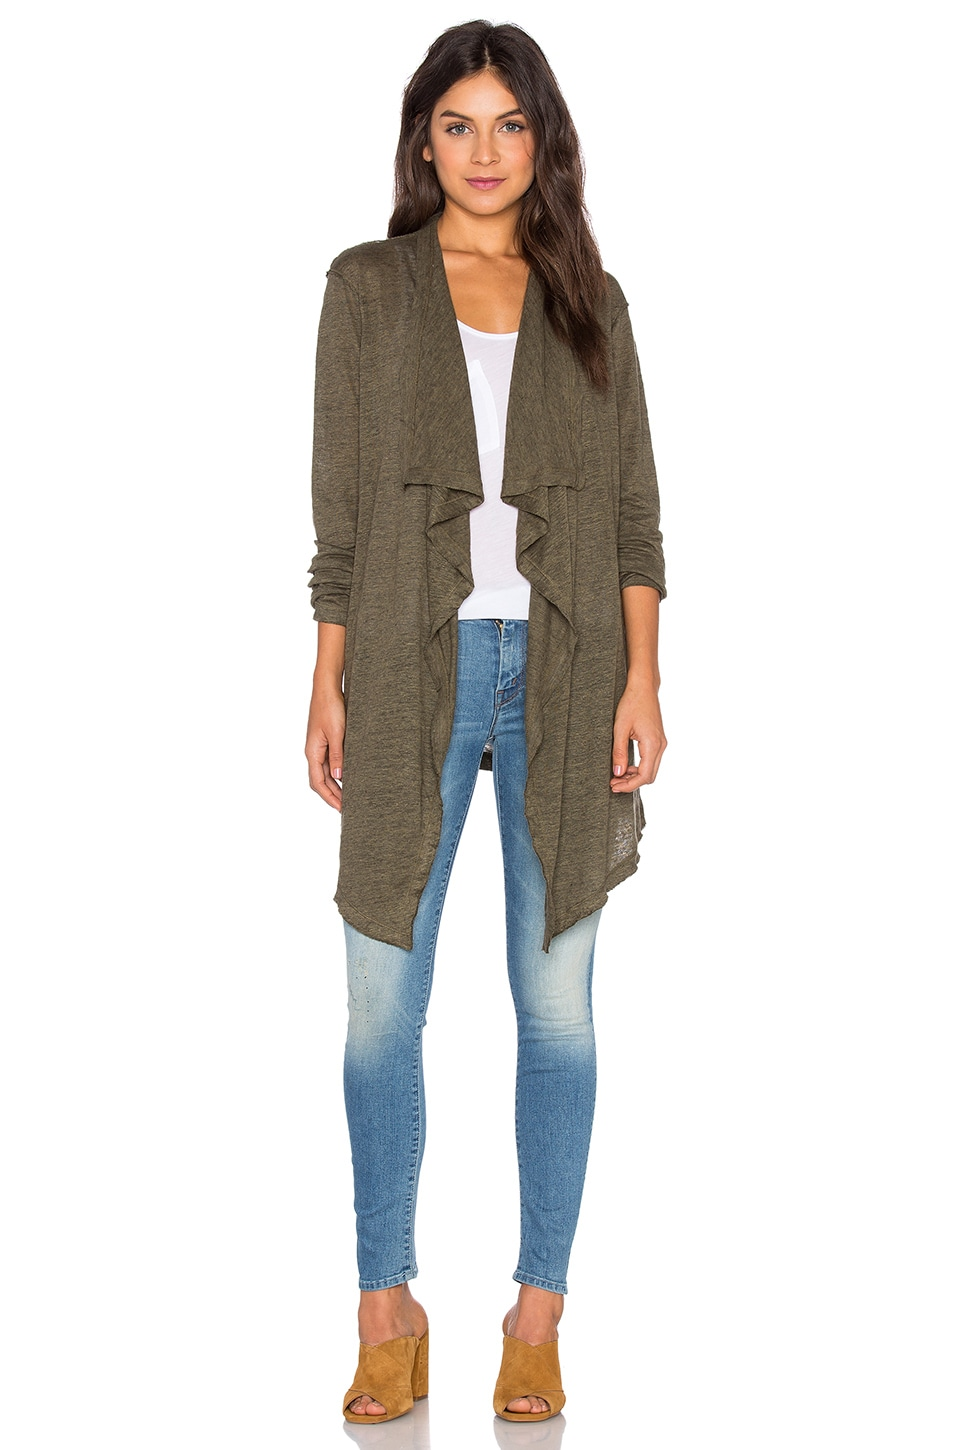 Heather Linen Waterfall Cardigan in Heather Olive